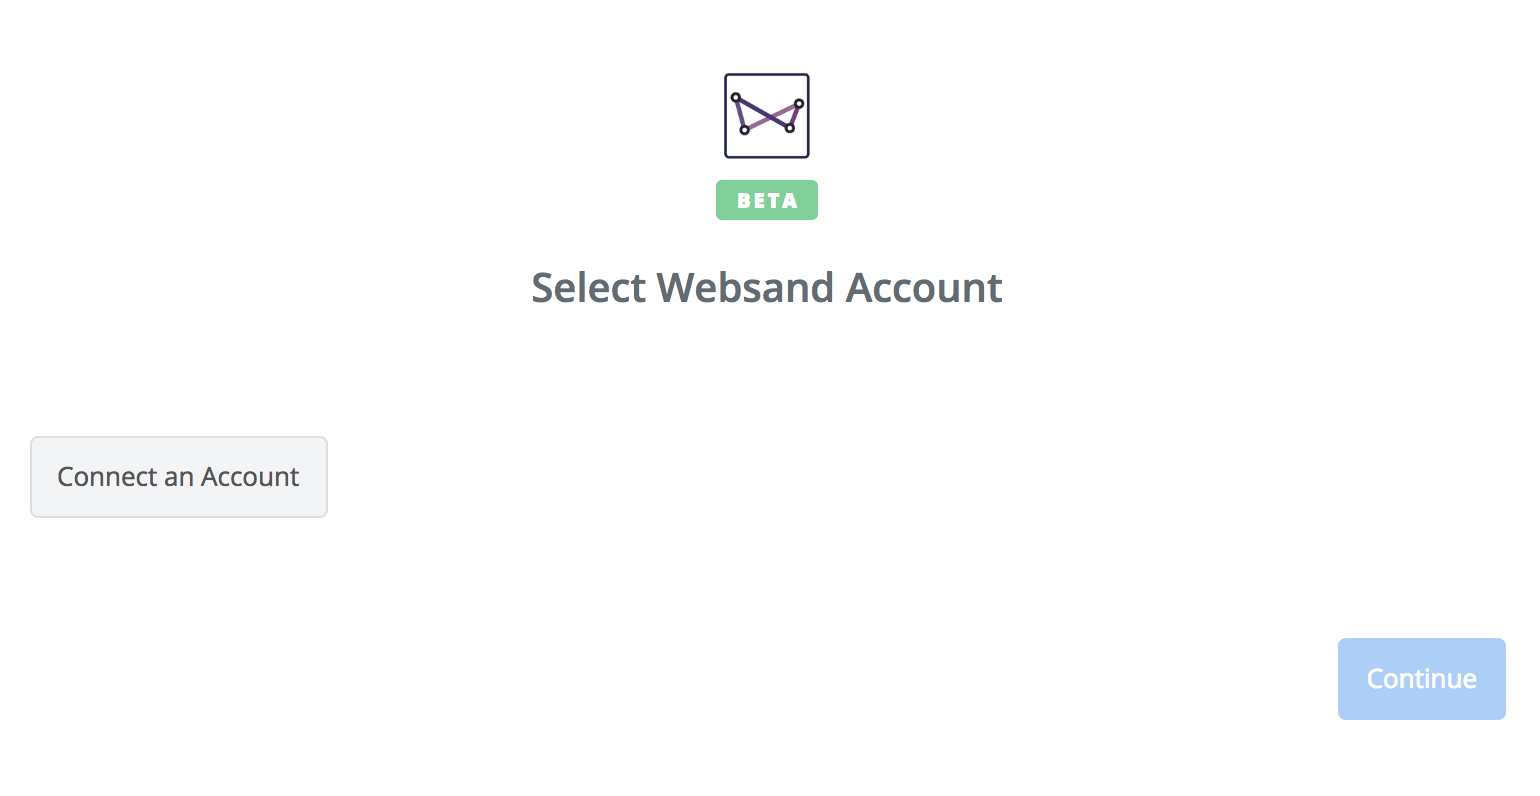 Click to connect Websand